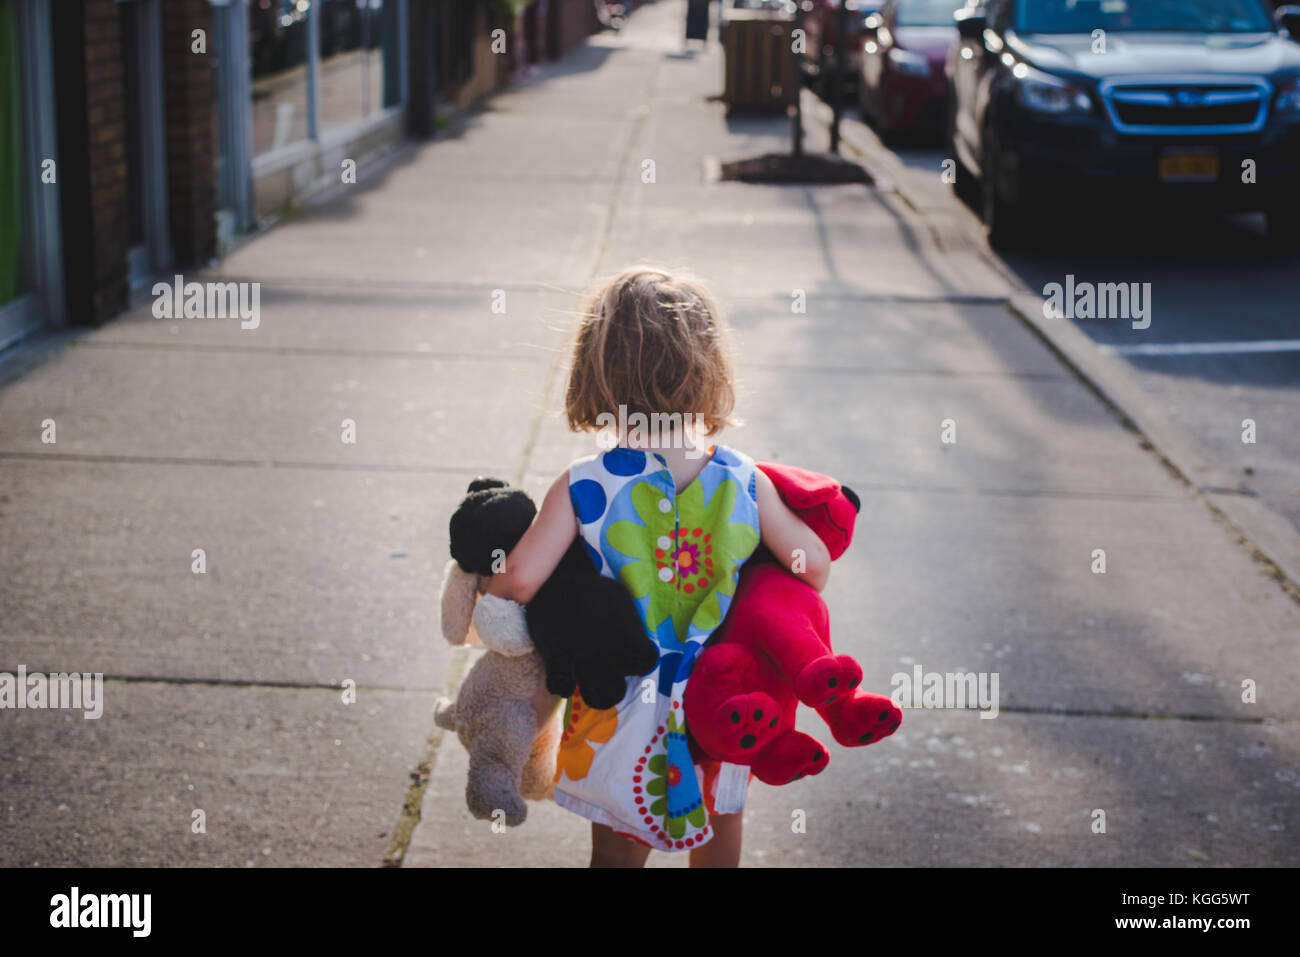 a little girl walks down a sidewalk with a handful of stuffed animals - Stock Image